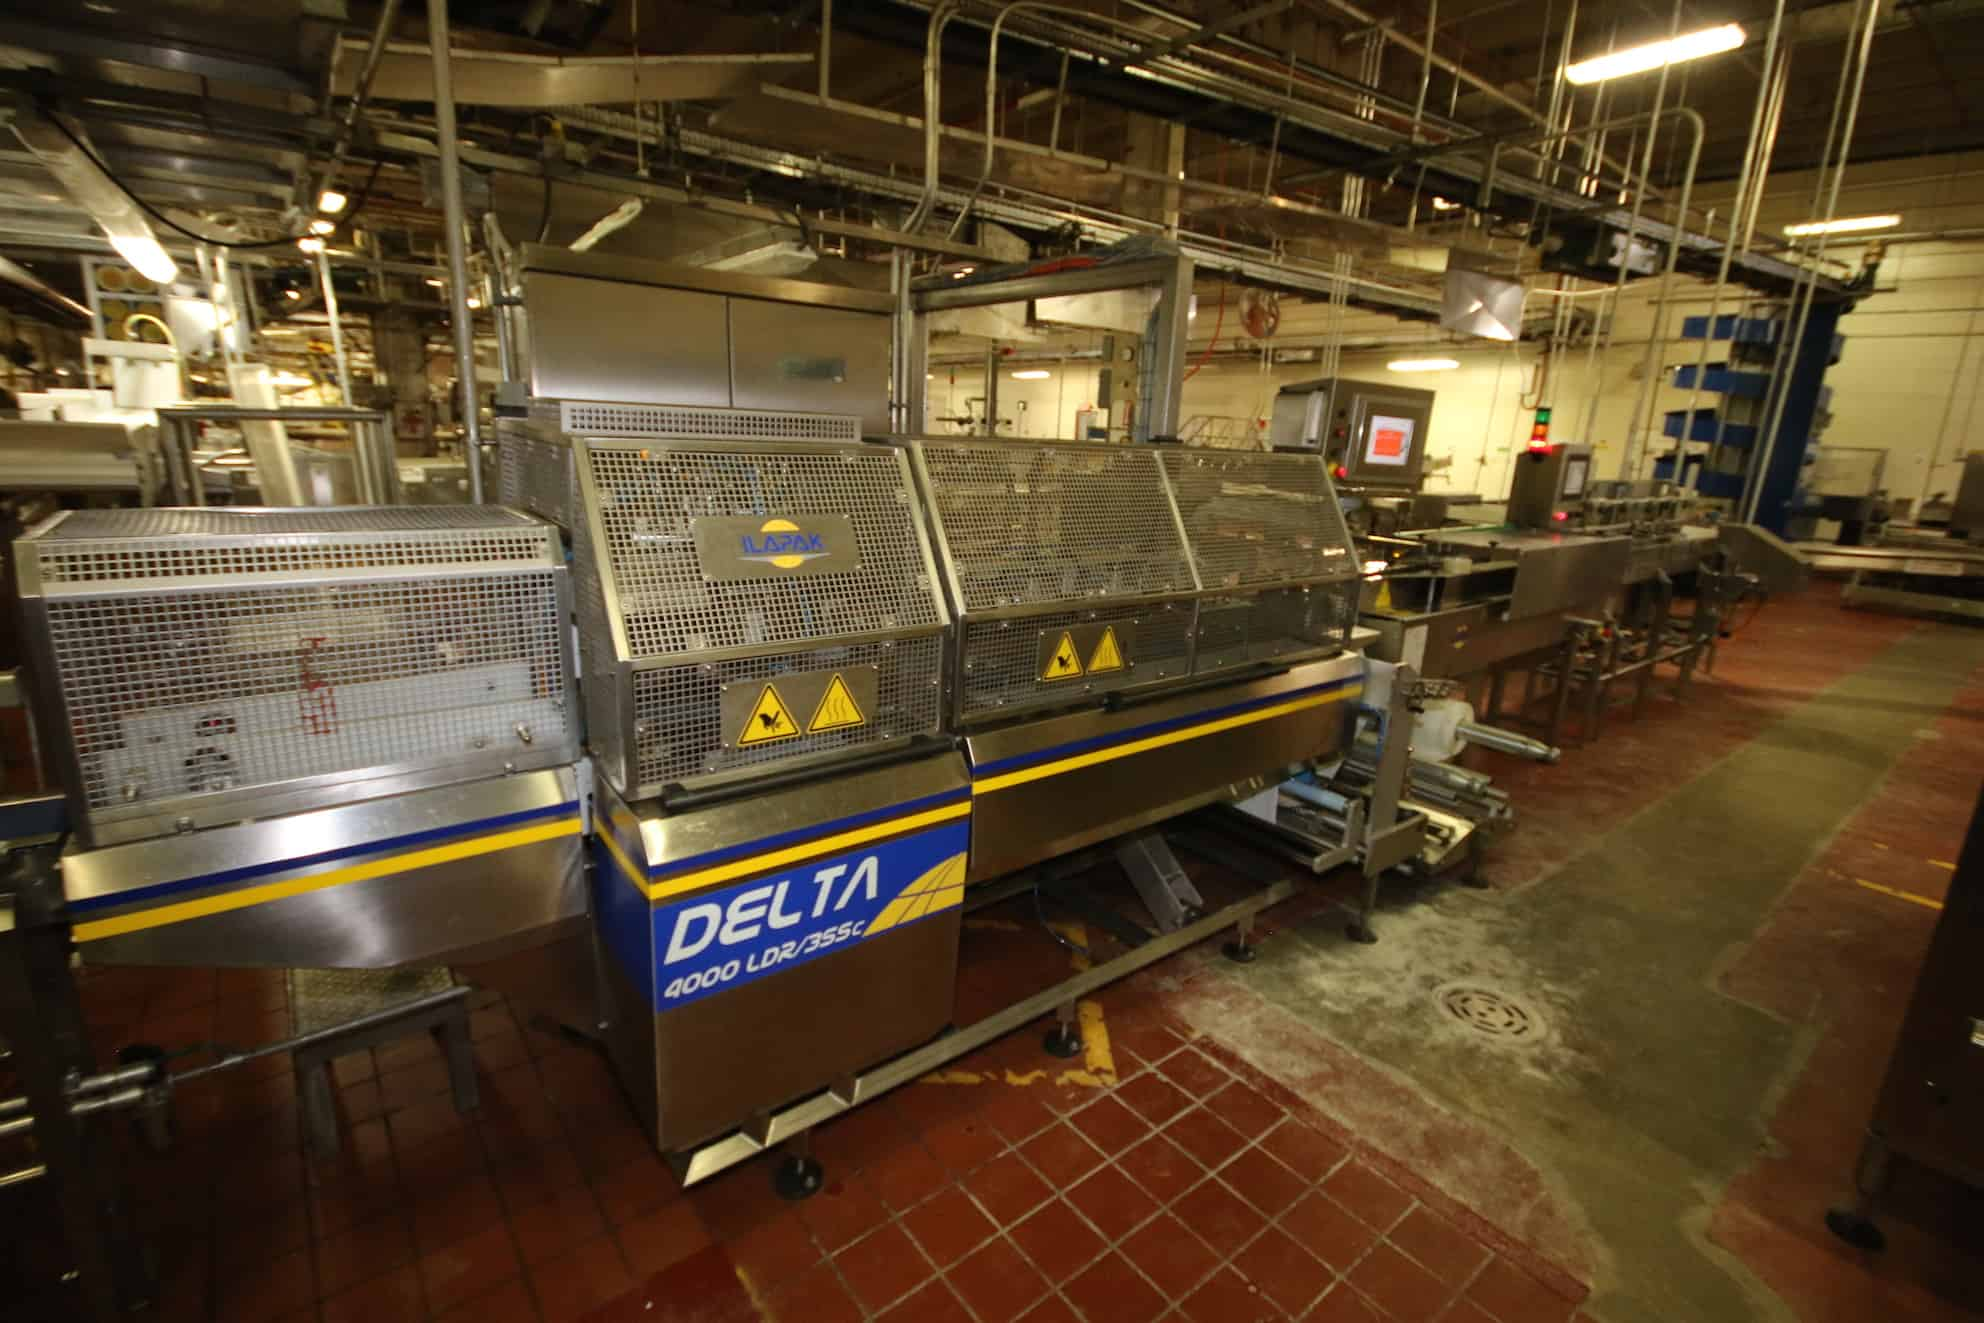 2013 Ilapak Flow Wrapper, Model #Delta4000DR/3SSC, S/N 06402990008 with Controls and Touchpad Display (Pancake Line #5)